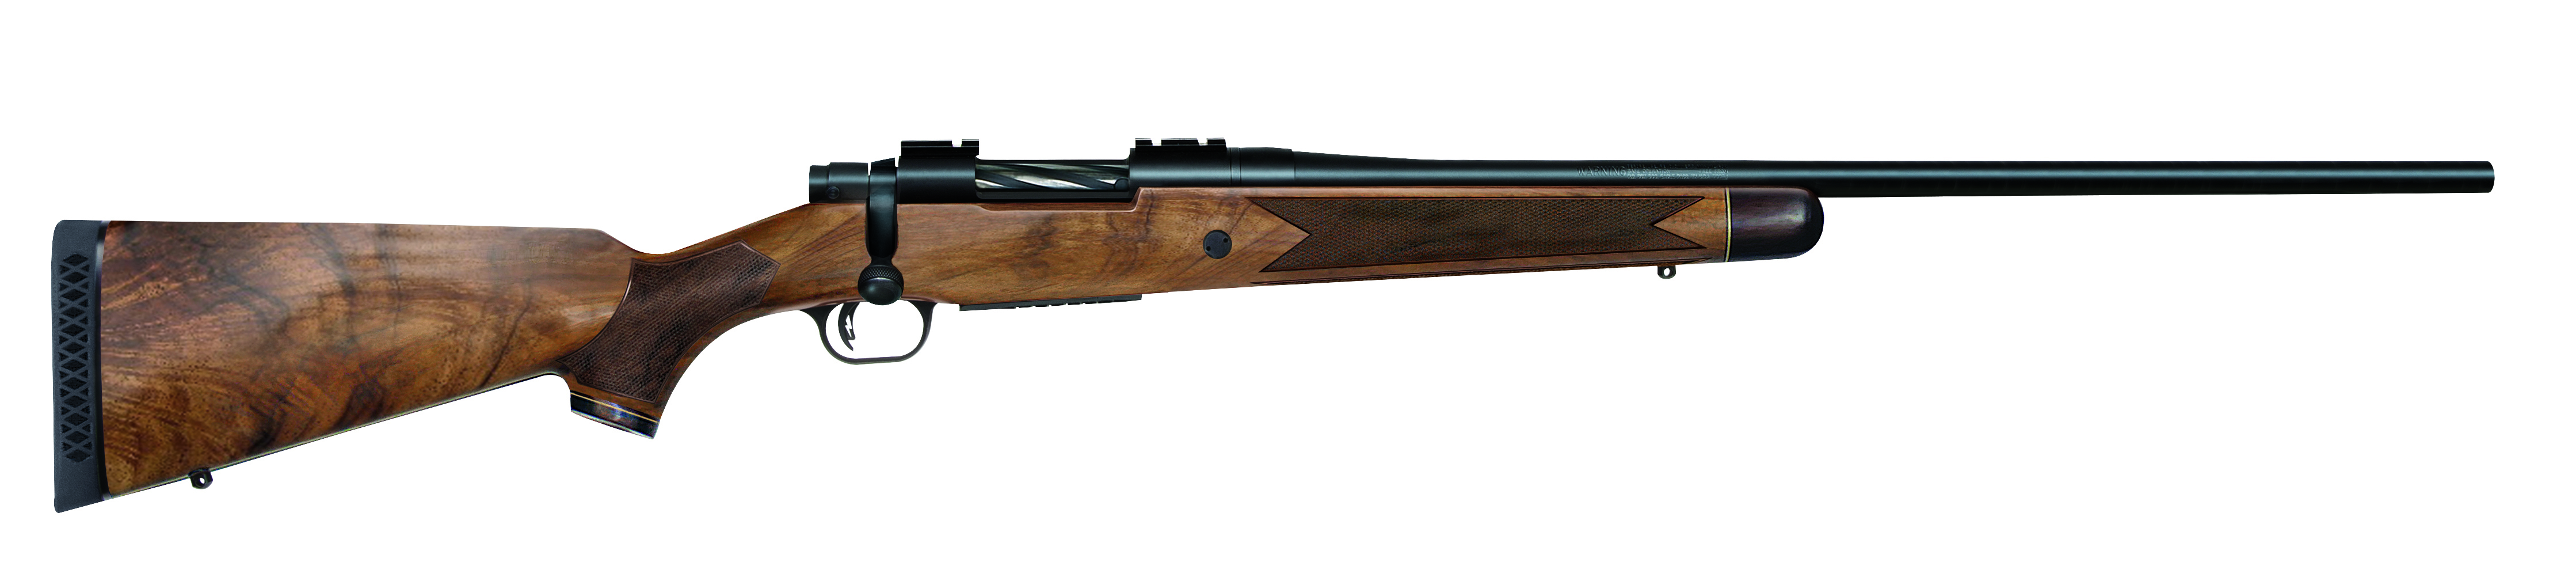 Mossberg Patriot Revere Rifle 243 Win